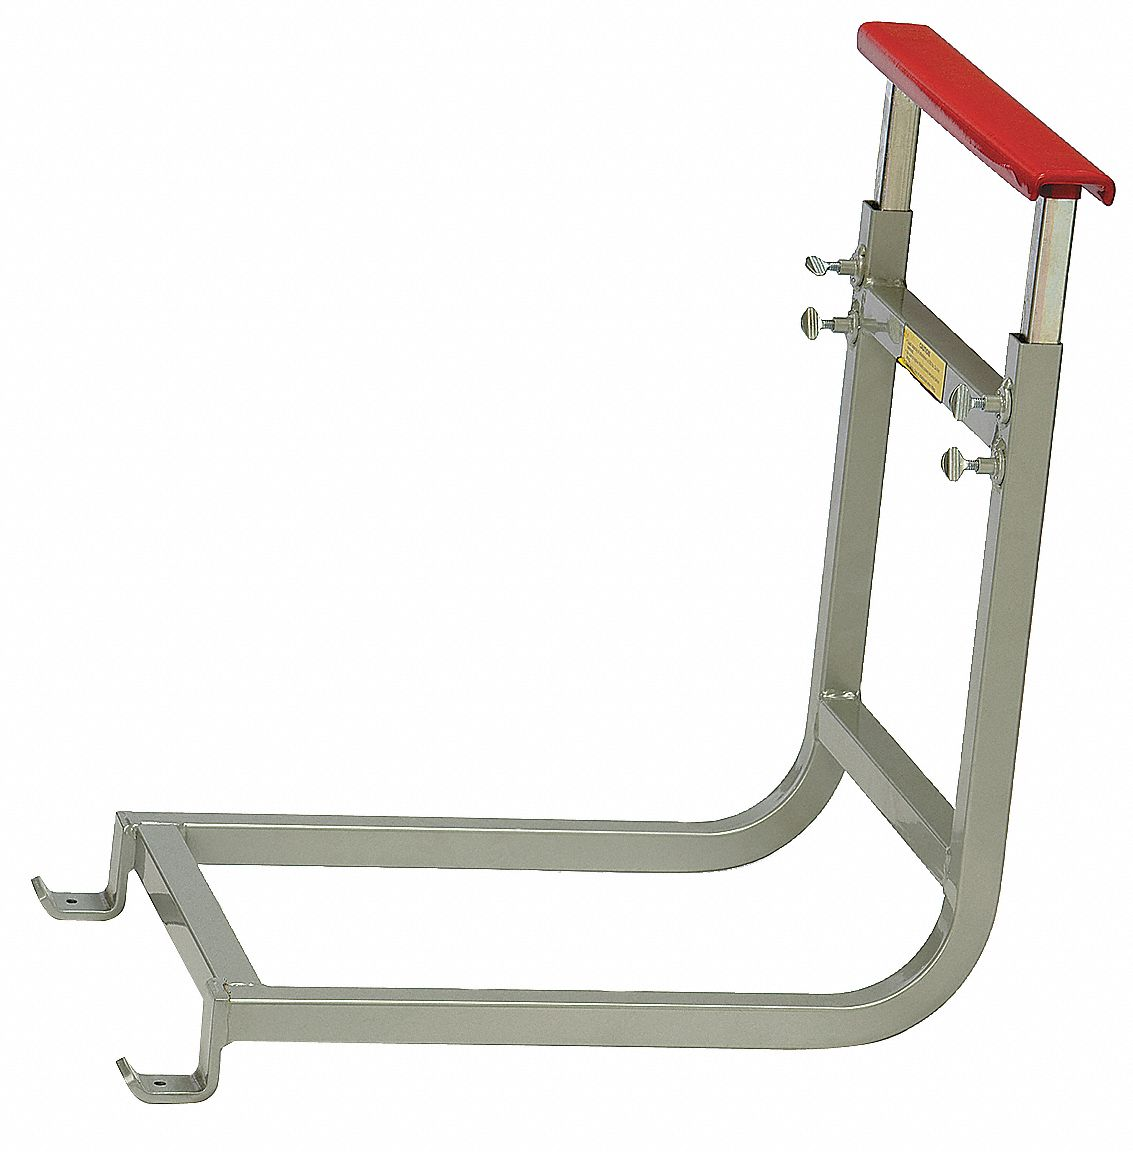 Single Pedestal Attachment,  250 lb Load Capacity,  16 in x 13 in x 13 in